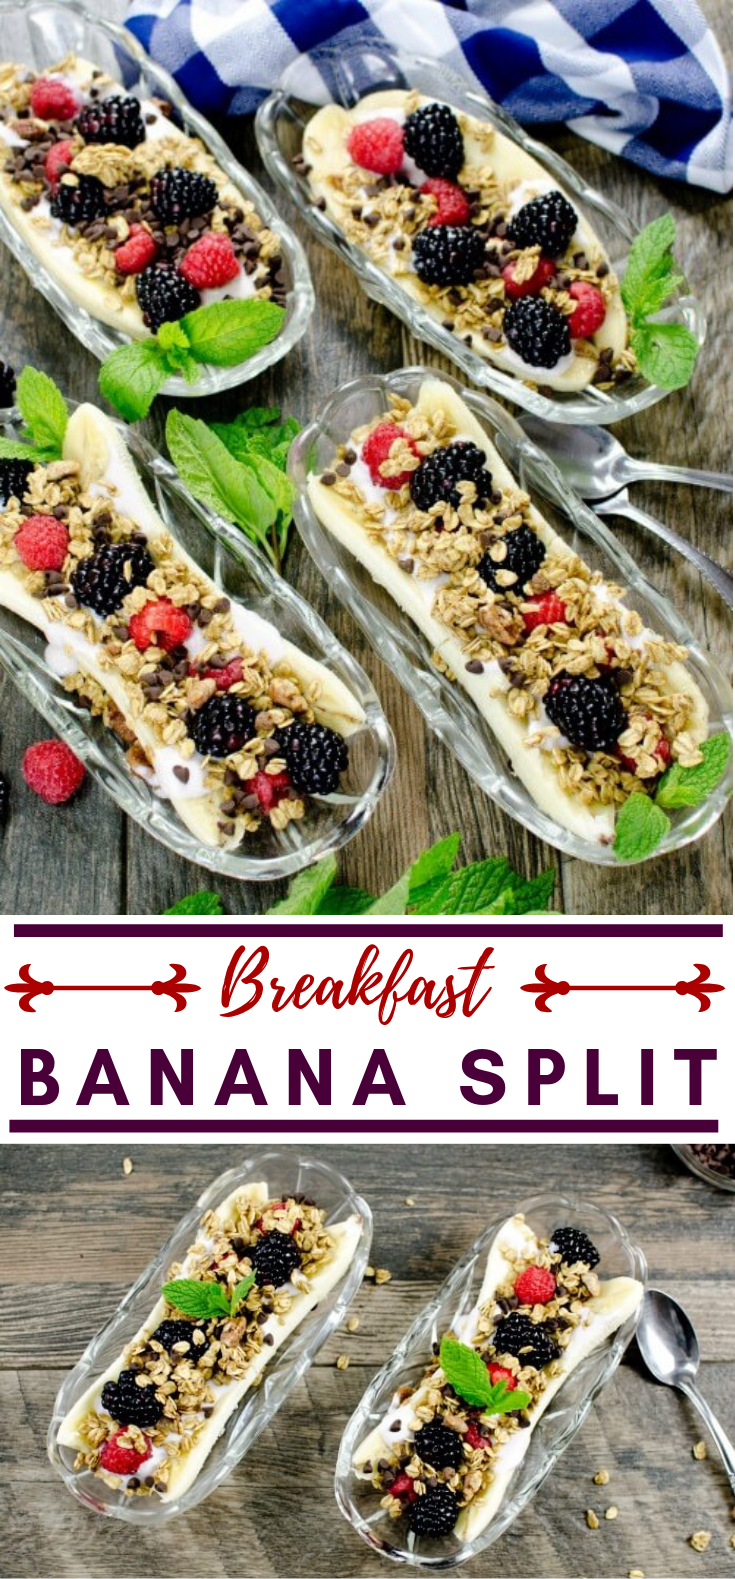 BREAKFAST BANANA SPLIT #healthy #homemade